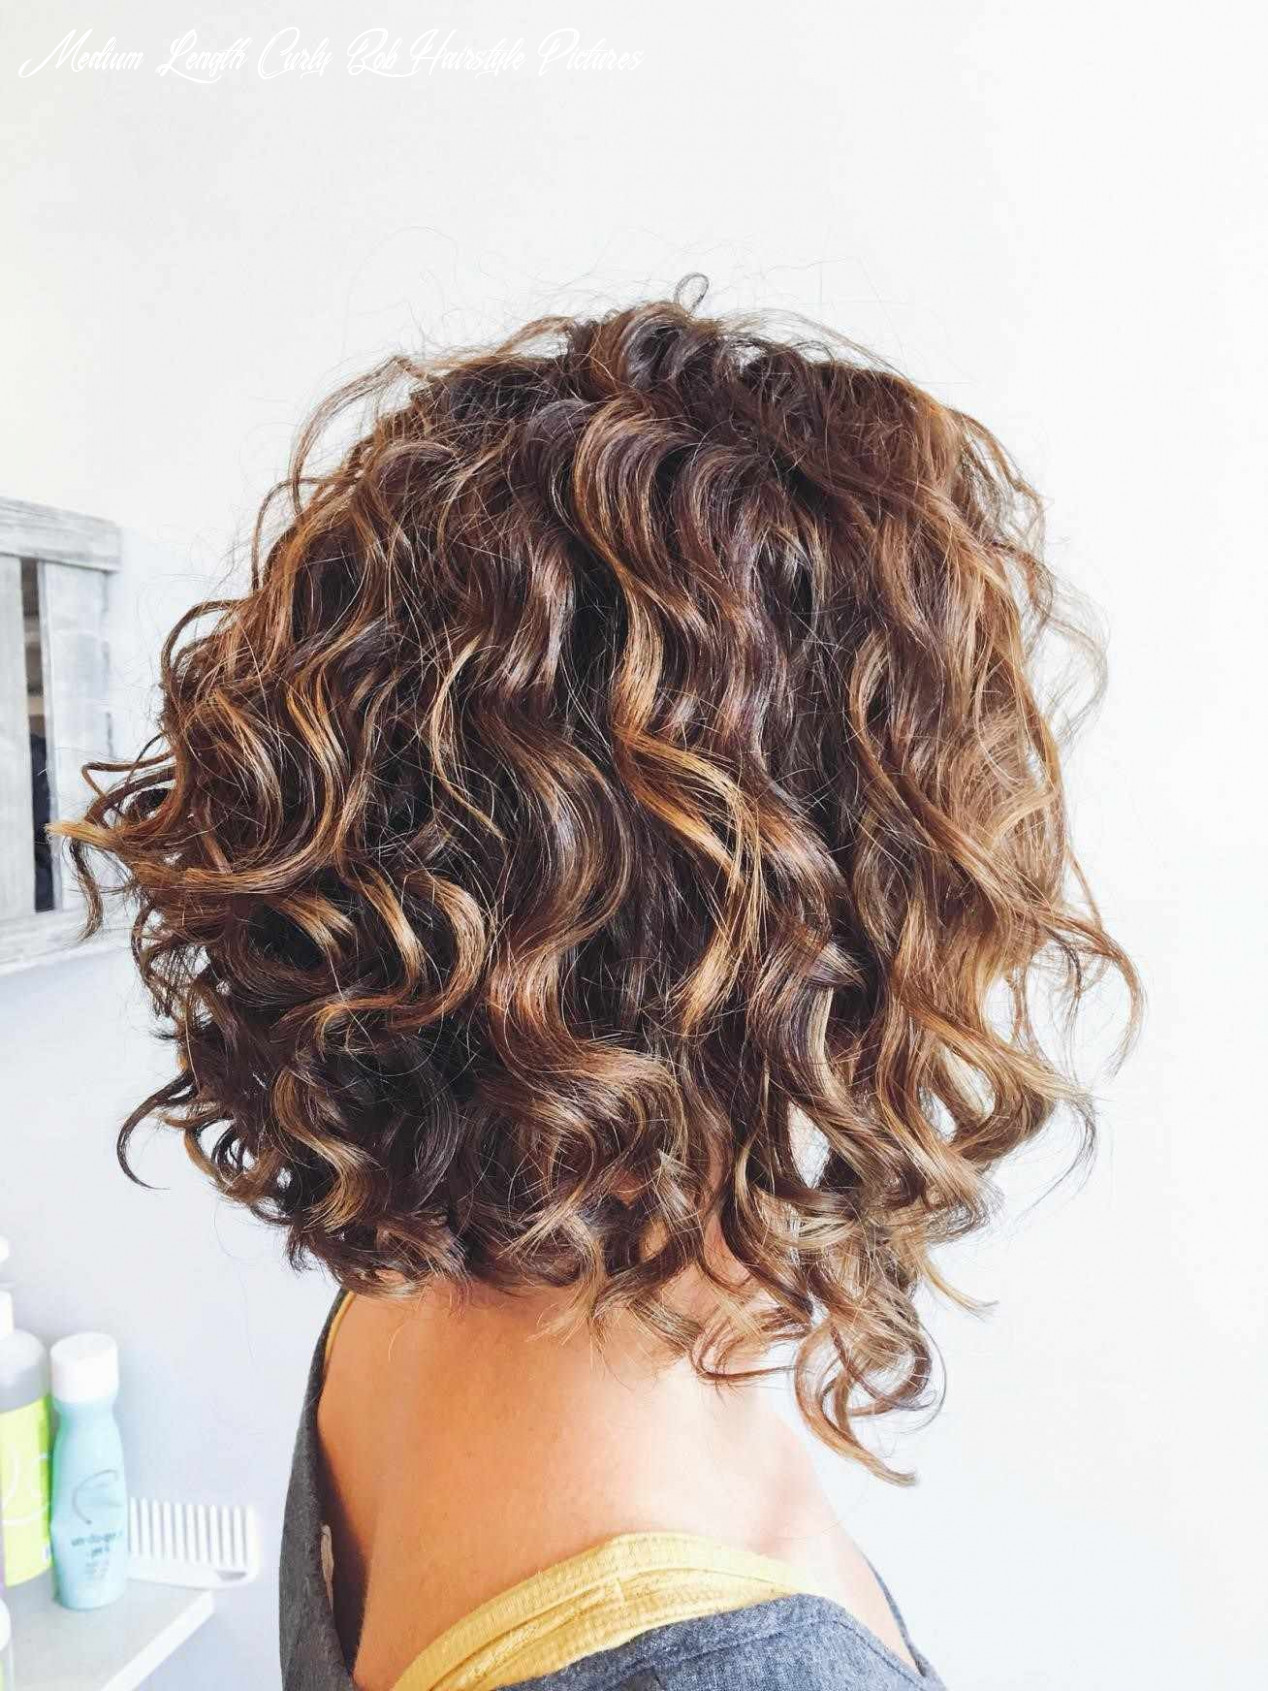 Shoulder length curly inverted bob google search | short permed